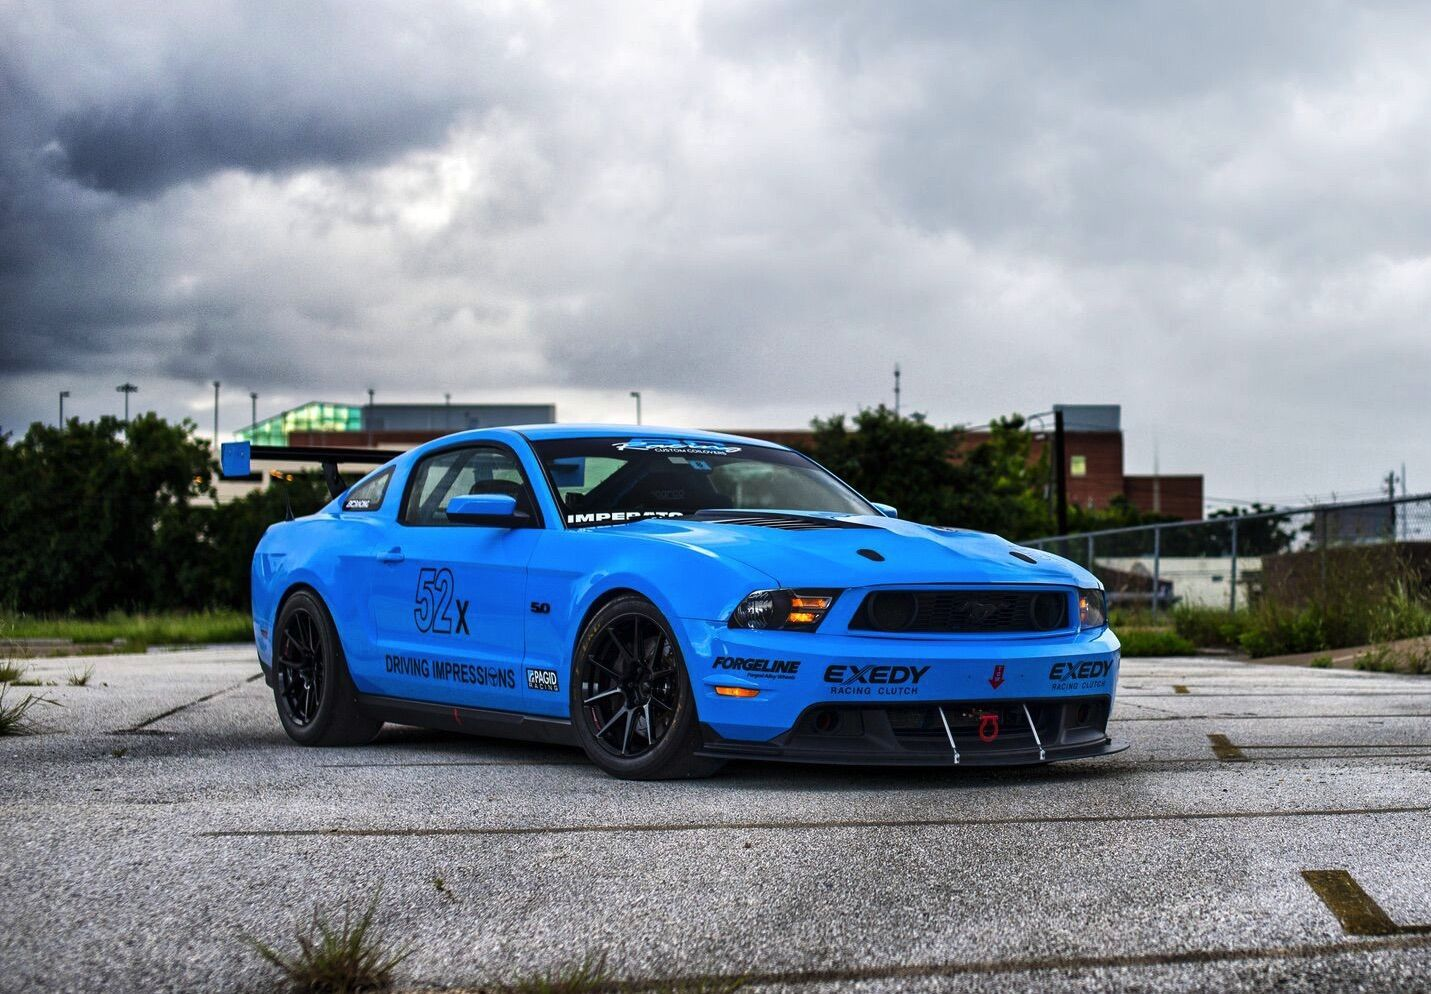 Anthony imperatos grabber blue s197 mustang gt on forgeline one